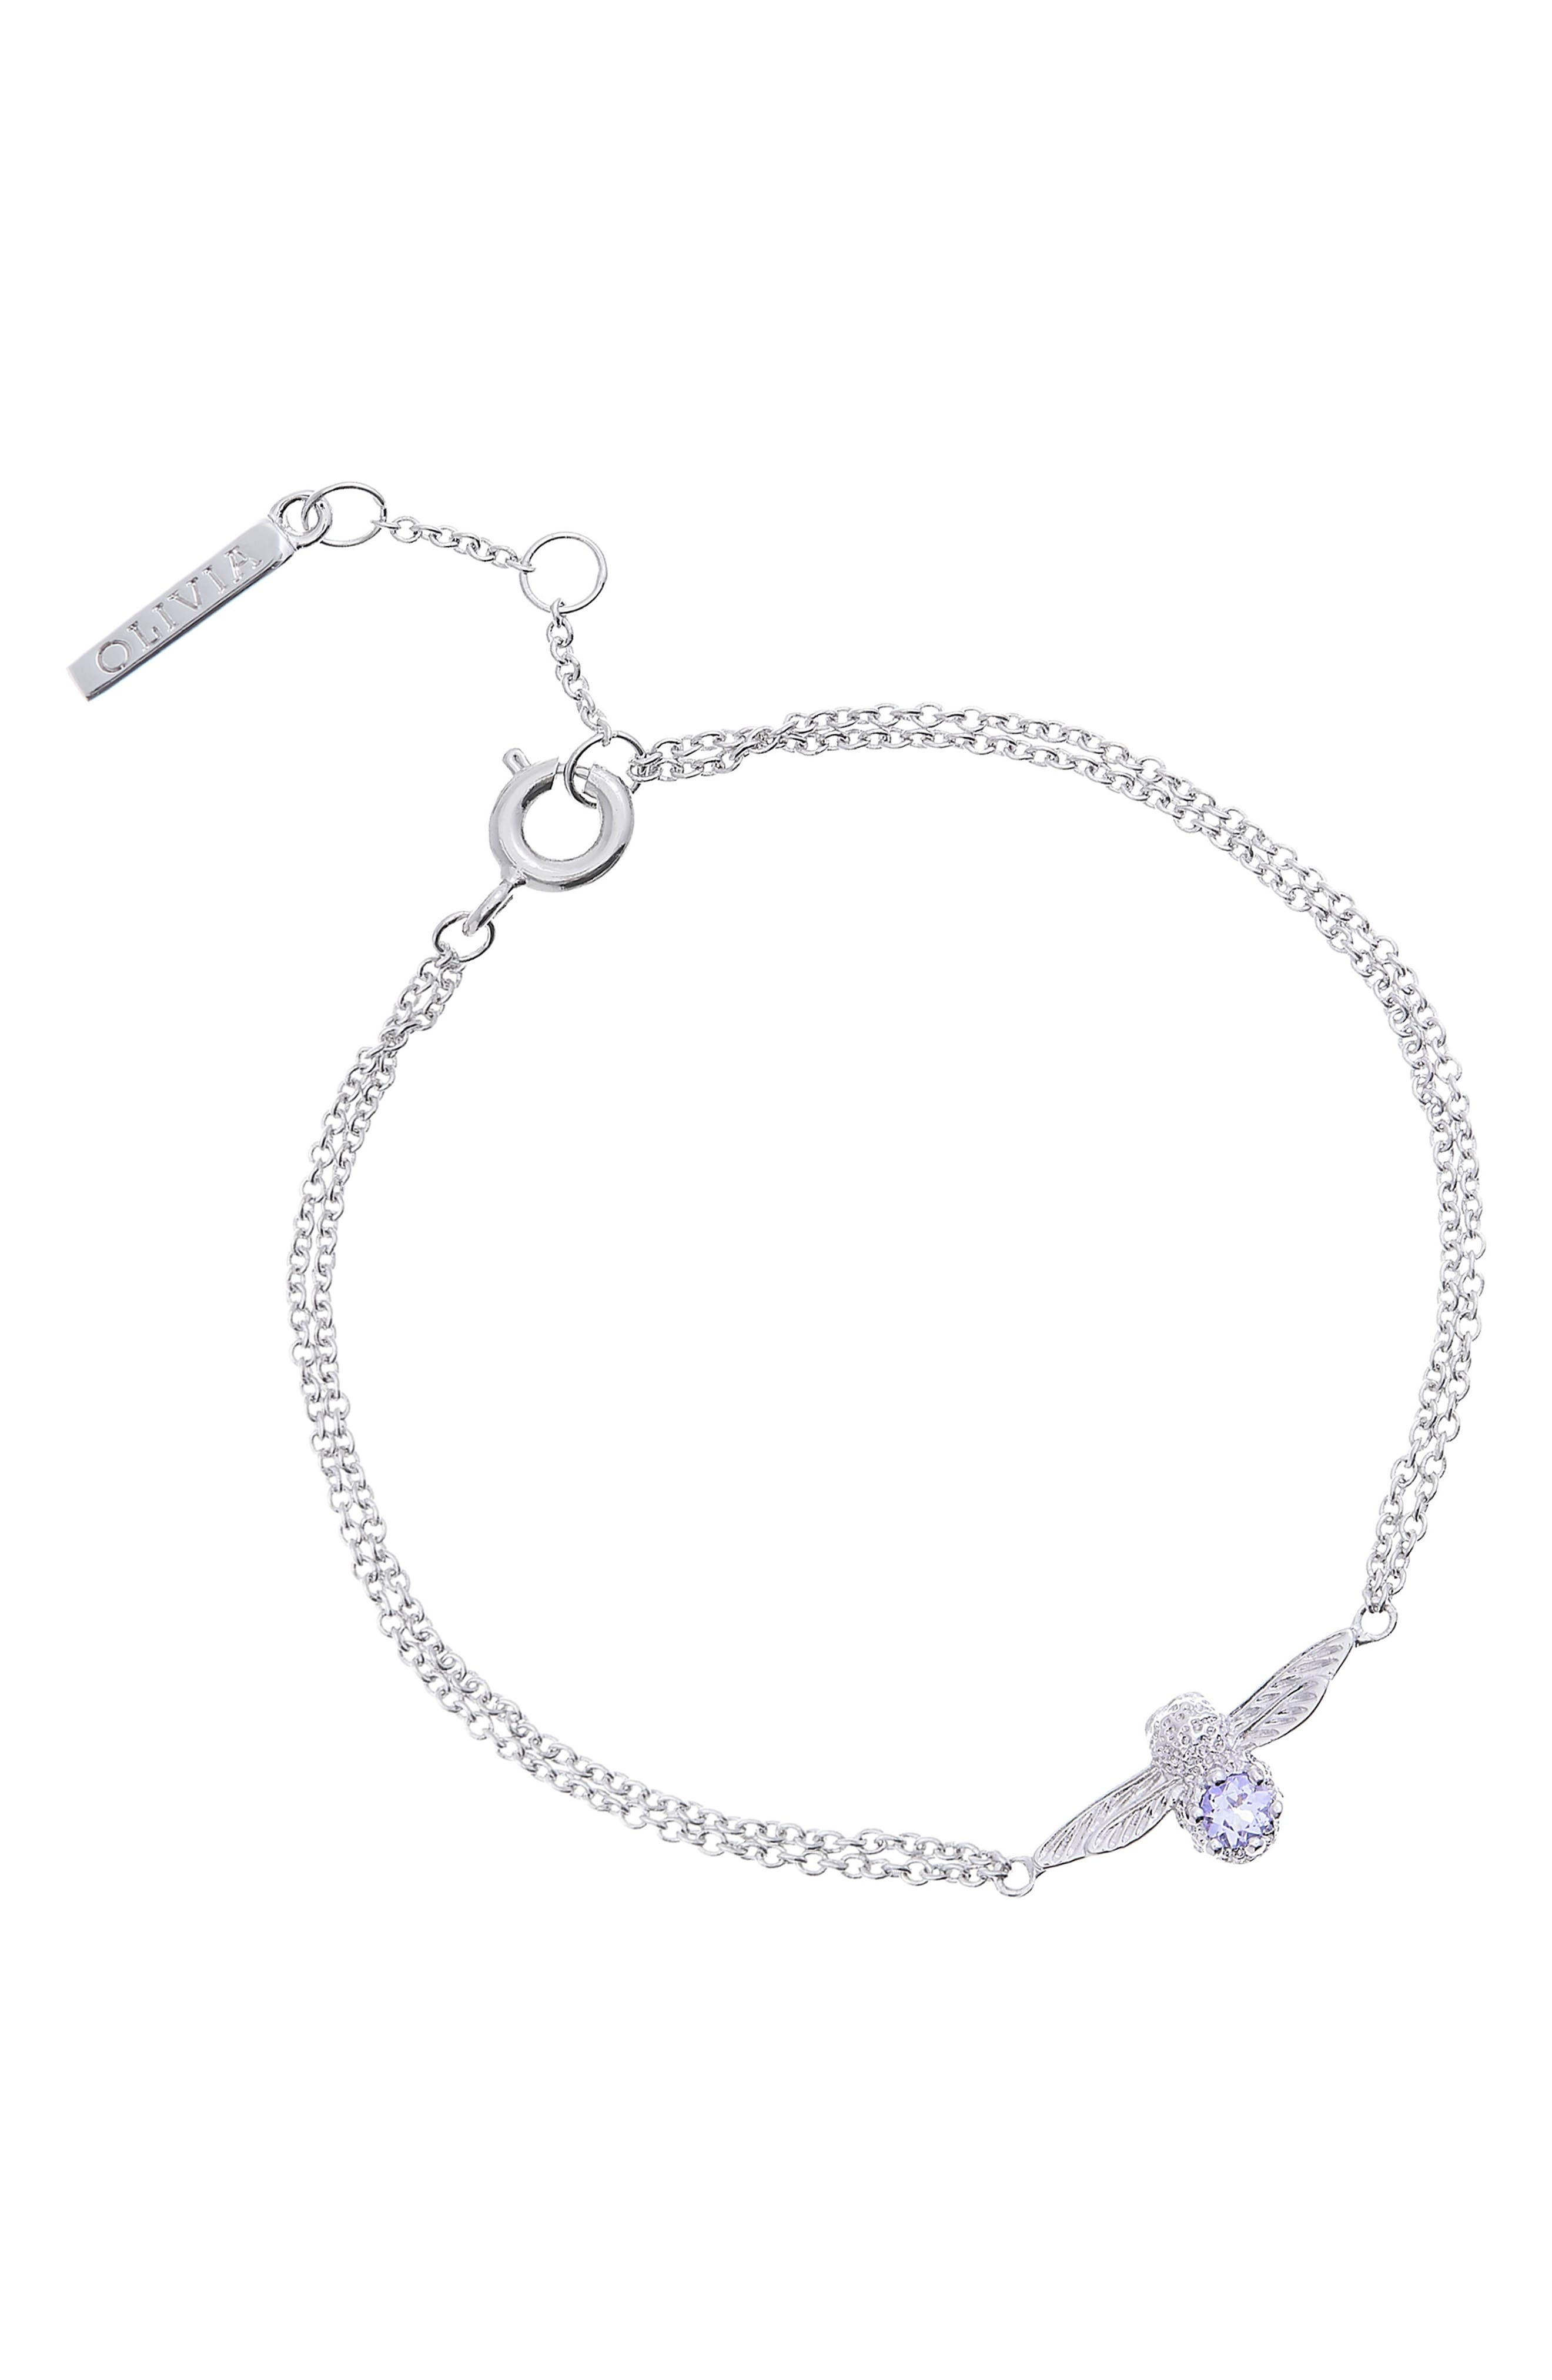 3D Bejeweled Bee Bracelet,                             Main thumbnail 1, color,                             TWO TONE-SILVER / TANZANITE